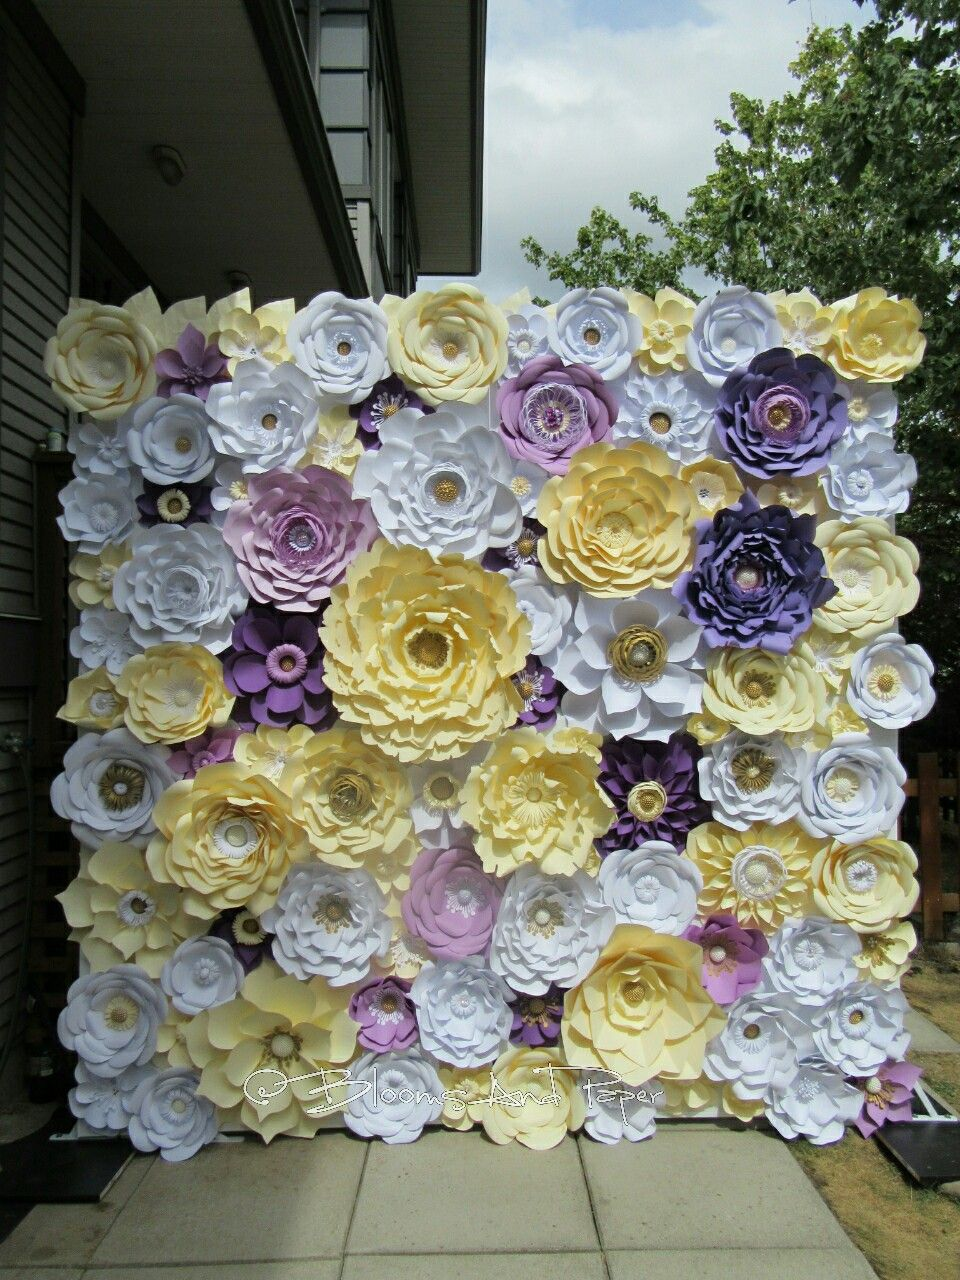 Our newest paper flower wall creation templates and individual our newest paper flower wall creation templates and individual flowers are available for sale mightylinksfo